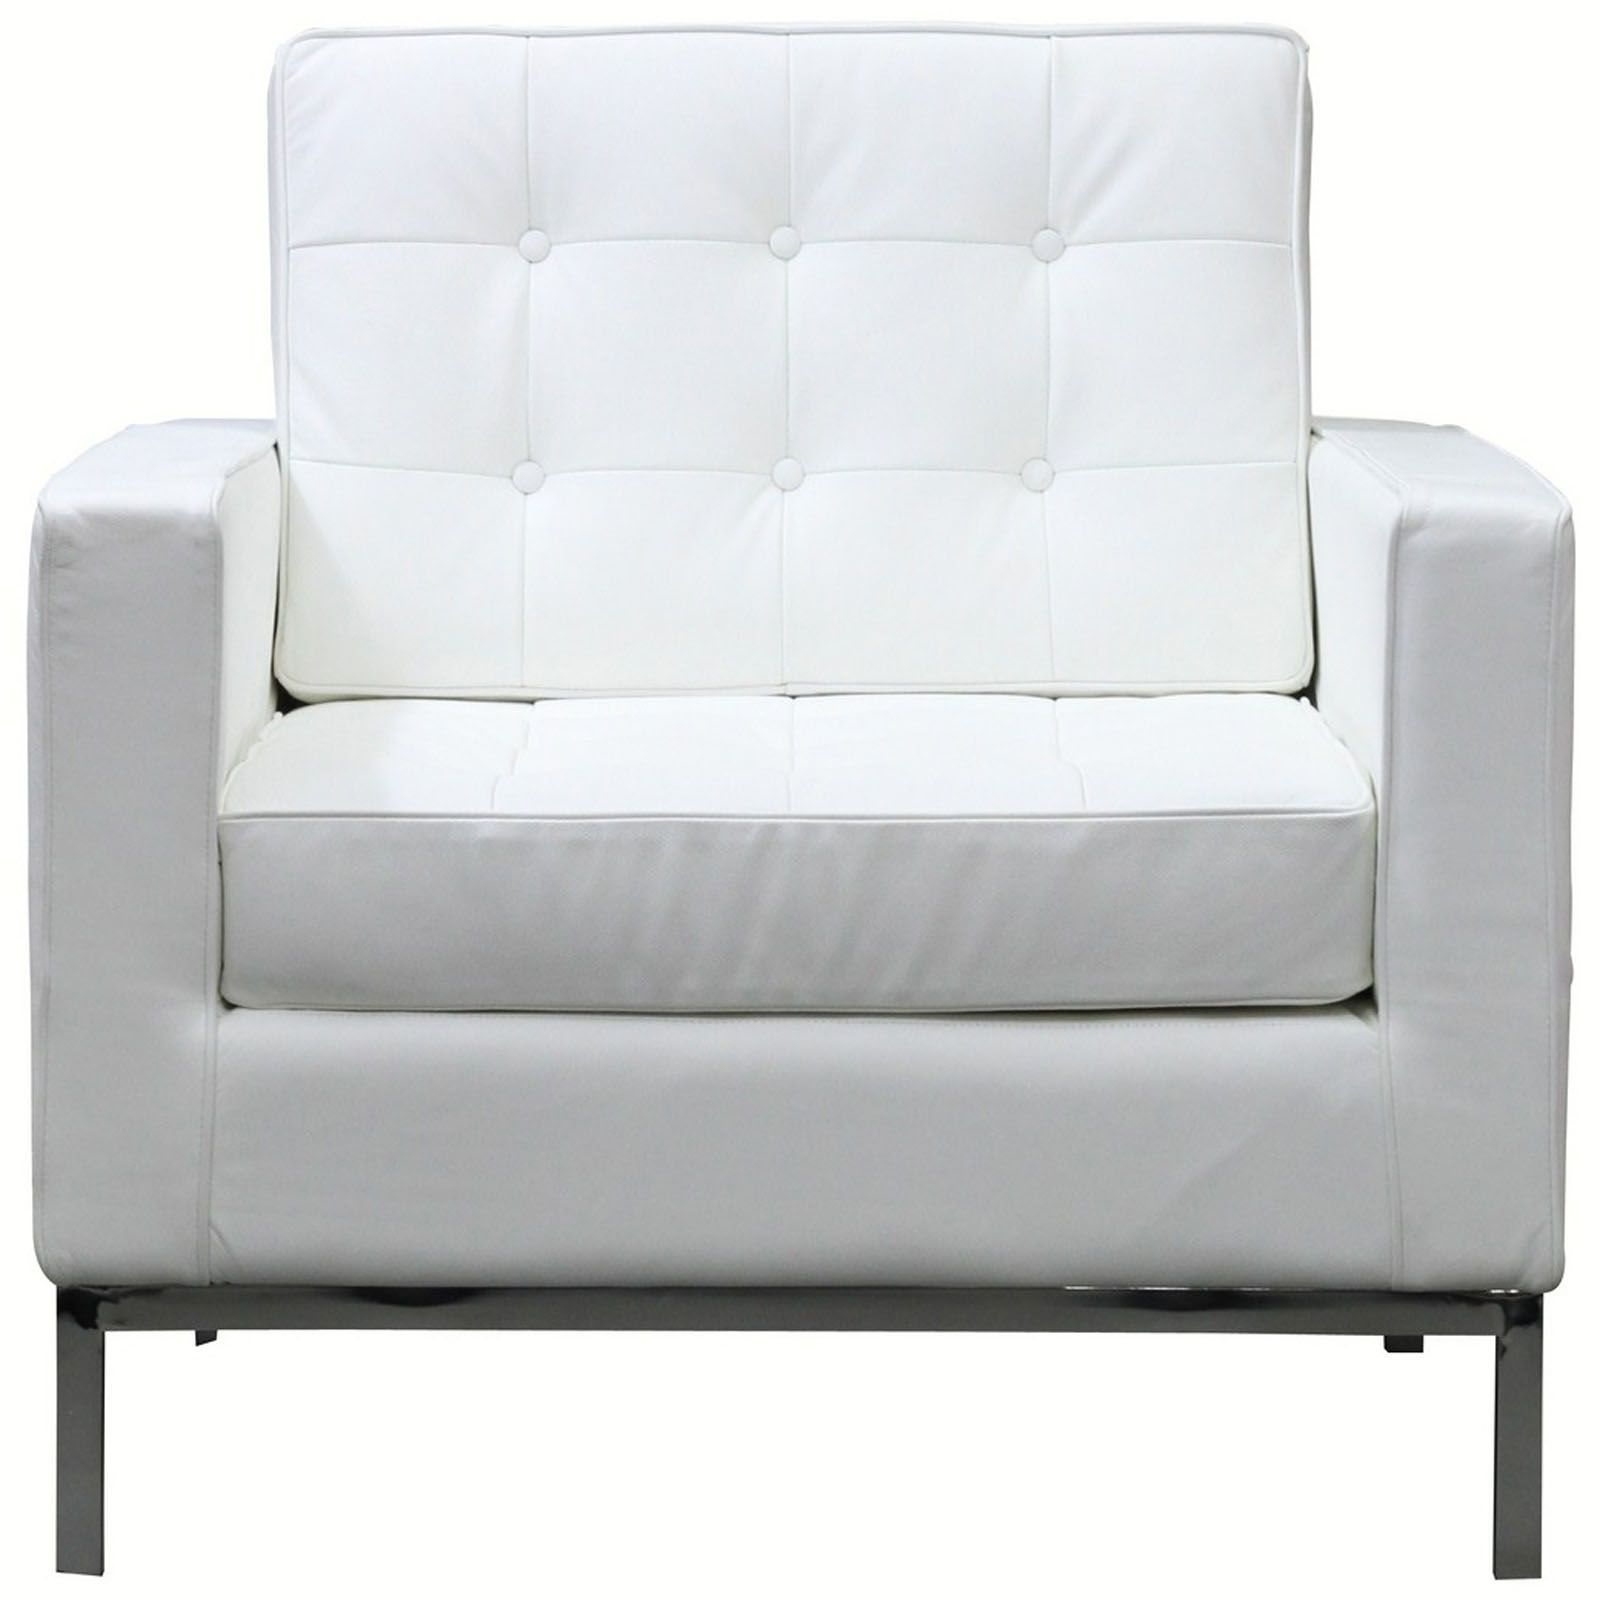 Enfield Modern White Leather Sofa: White Leather Sofas, Leather